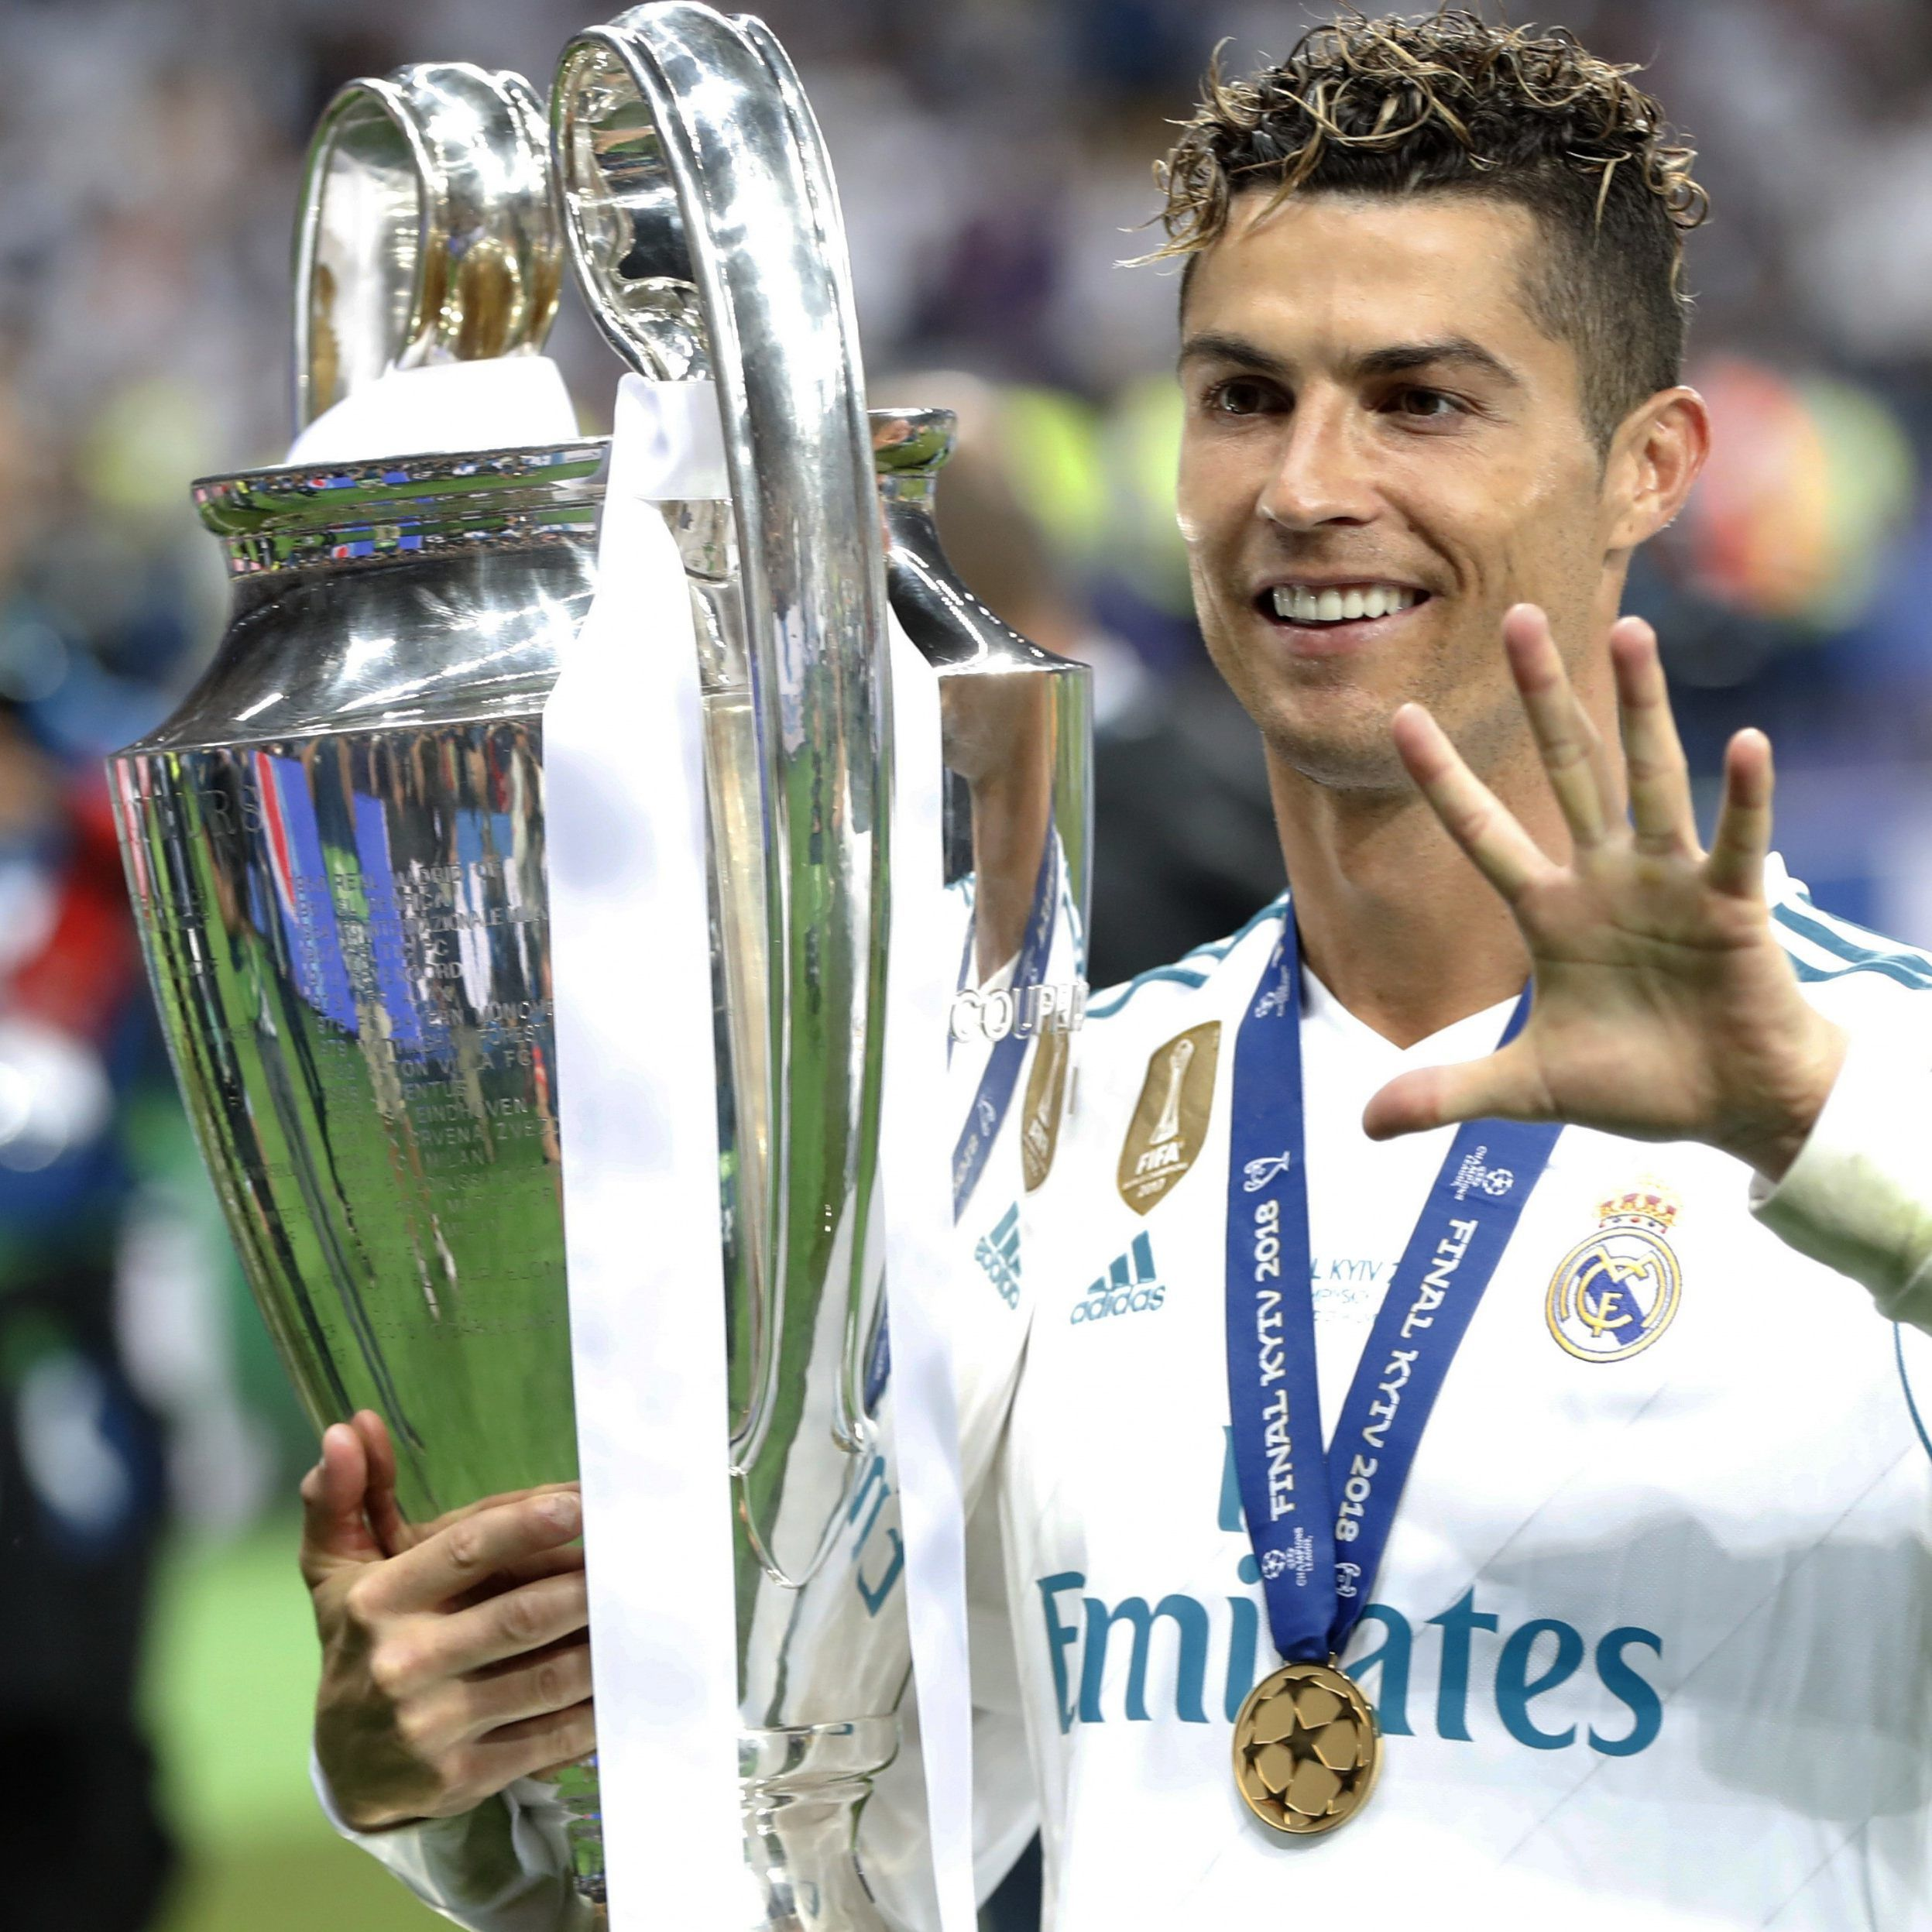 Ronaldo hat mit Real Madrid die Champions League 2017/18 gewonnen.